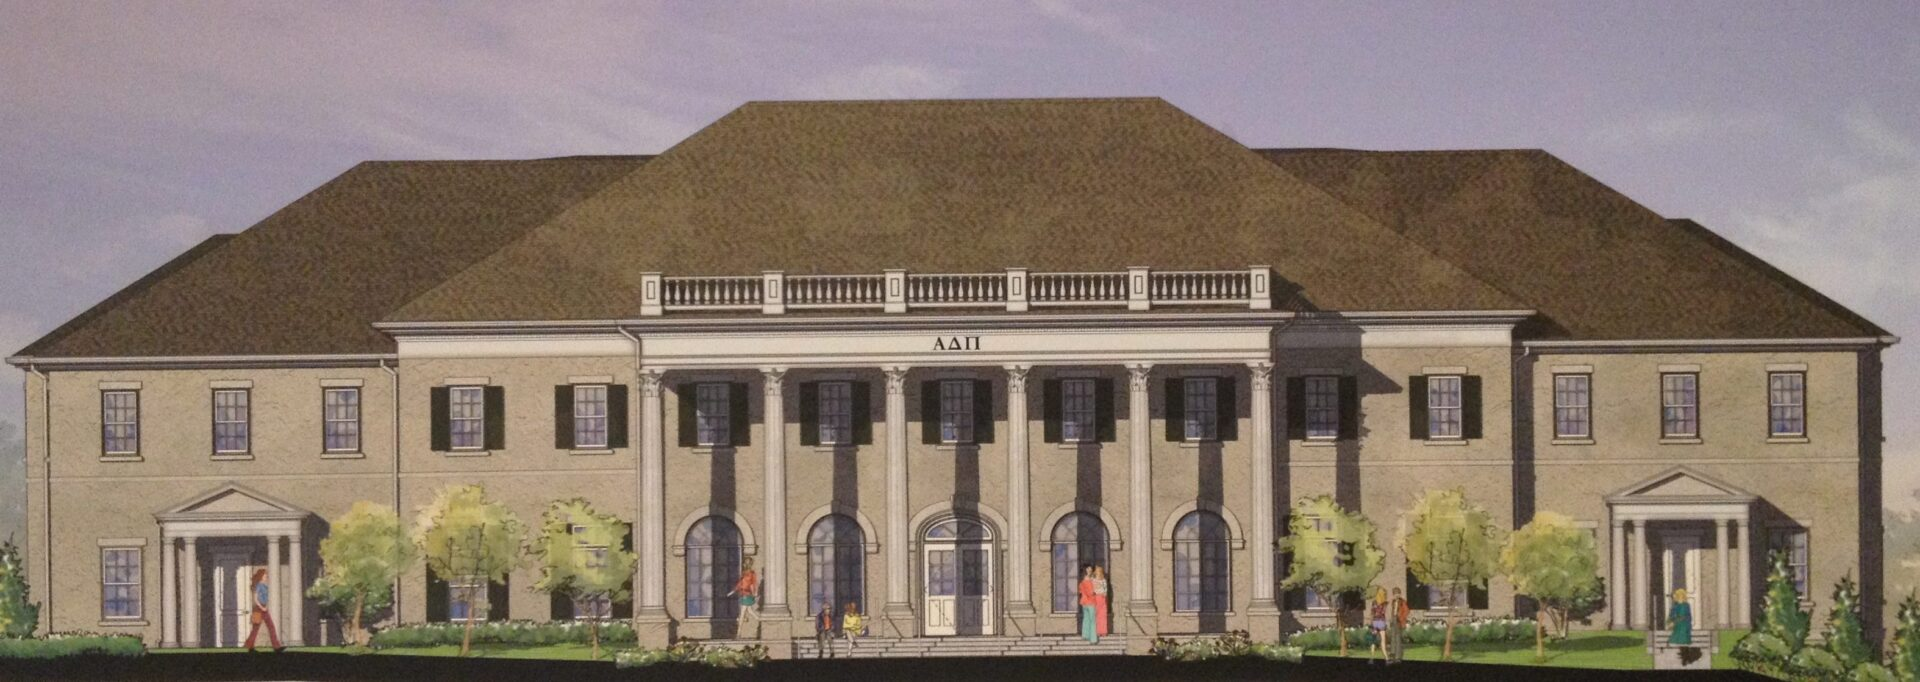 Alpha delta pi to break ground on new um sorority house hottytoddy